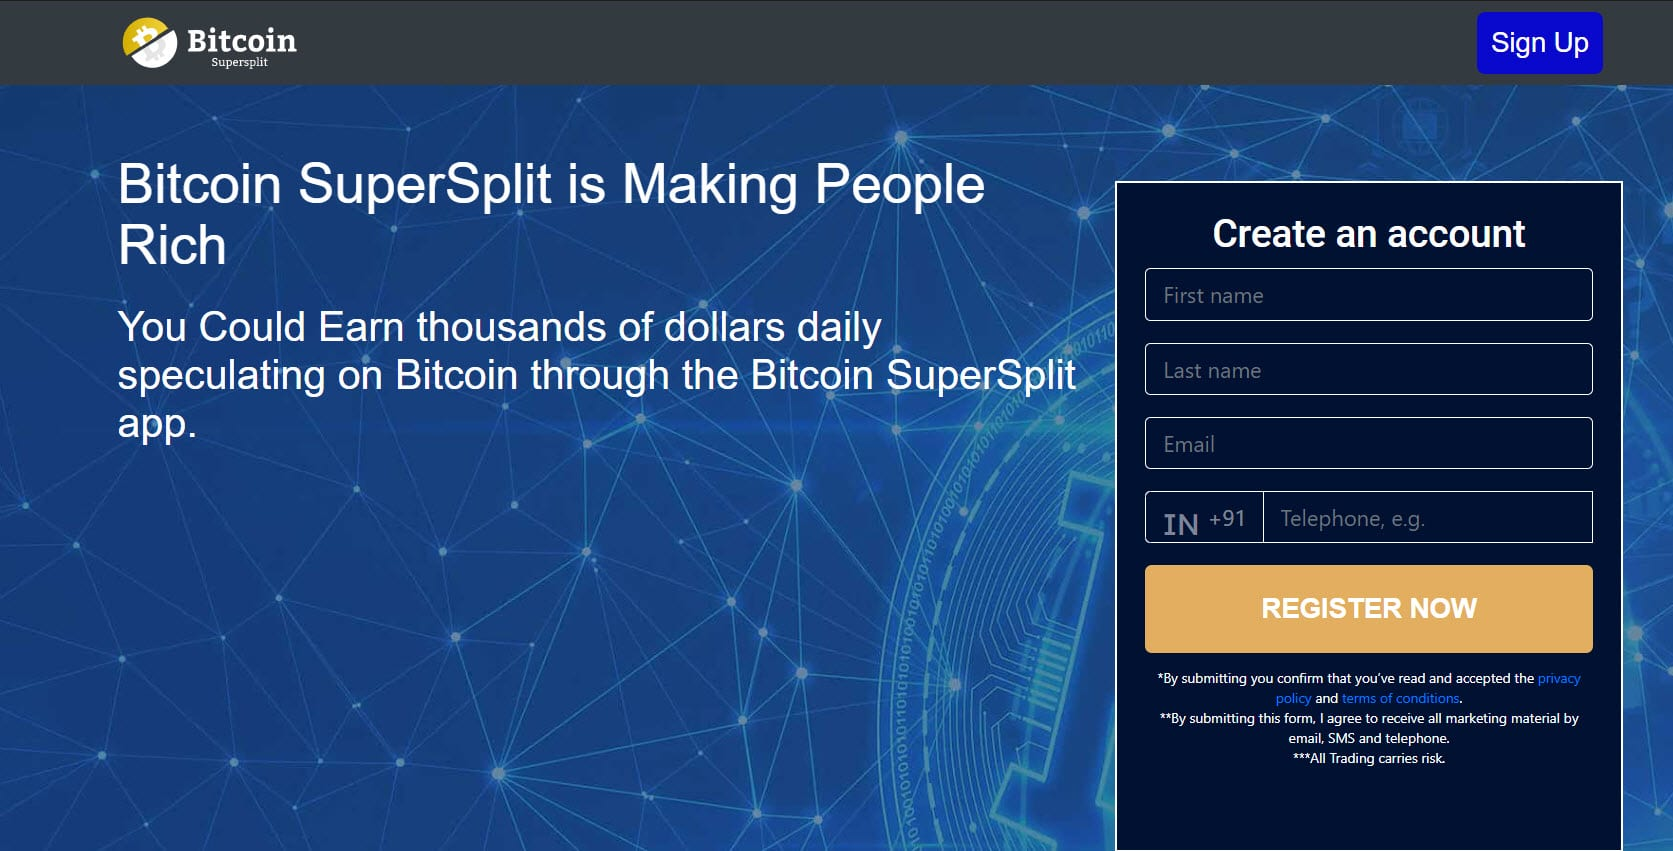 Bitcoin Supersplit Review